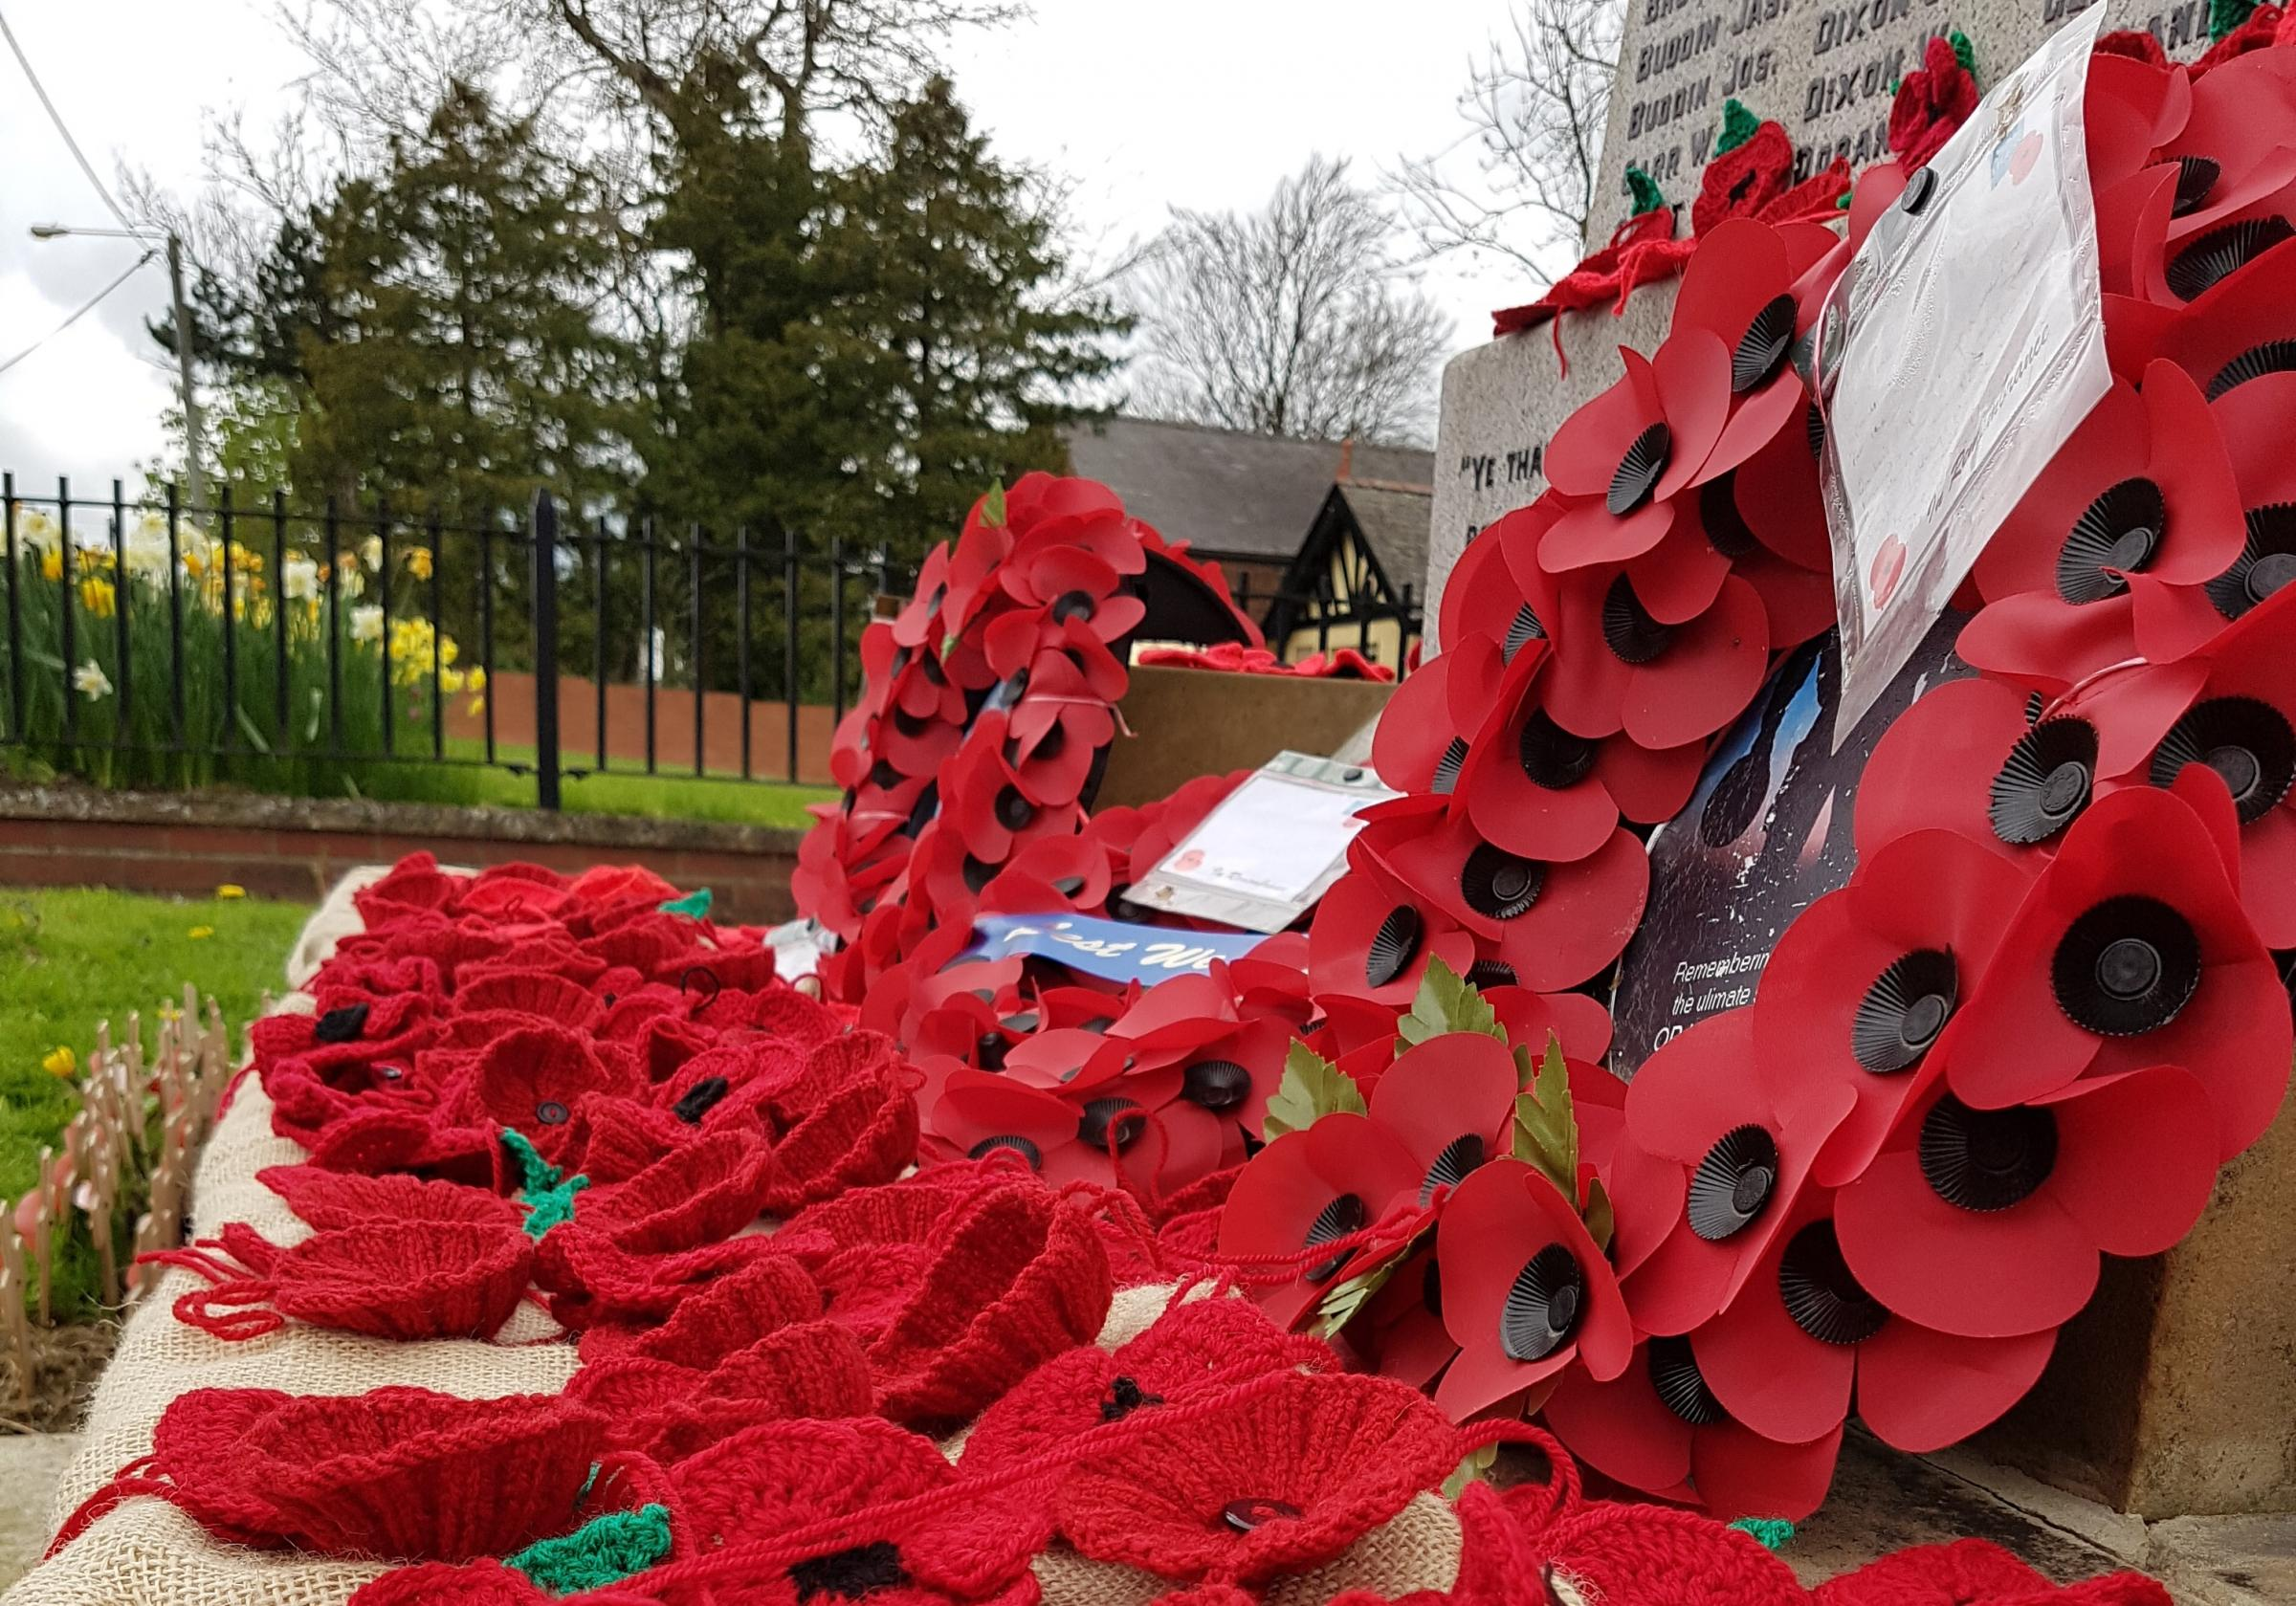 Locals hope to collect 2,000 poppies to mark the centenary in November. STOCK PHOTO